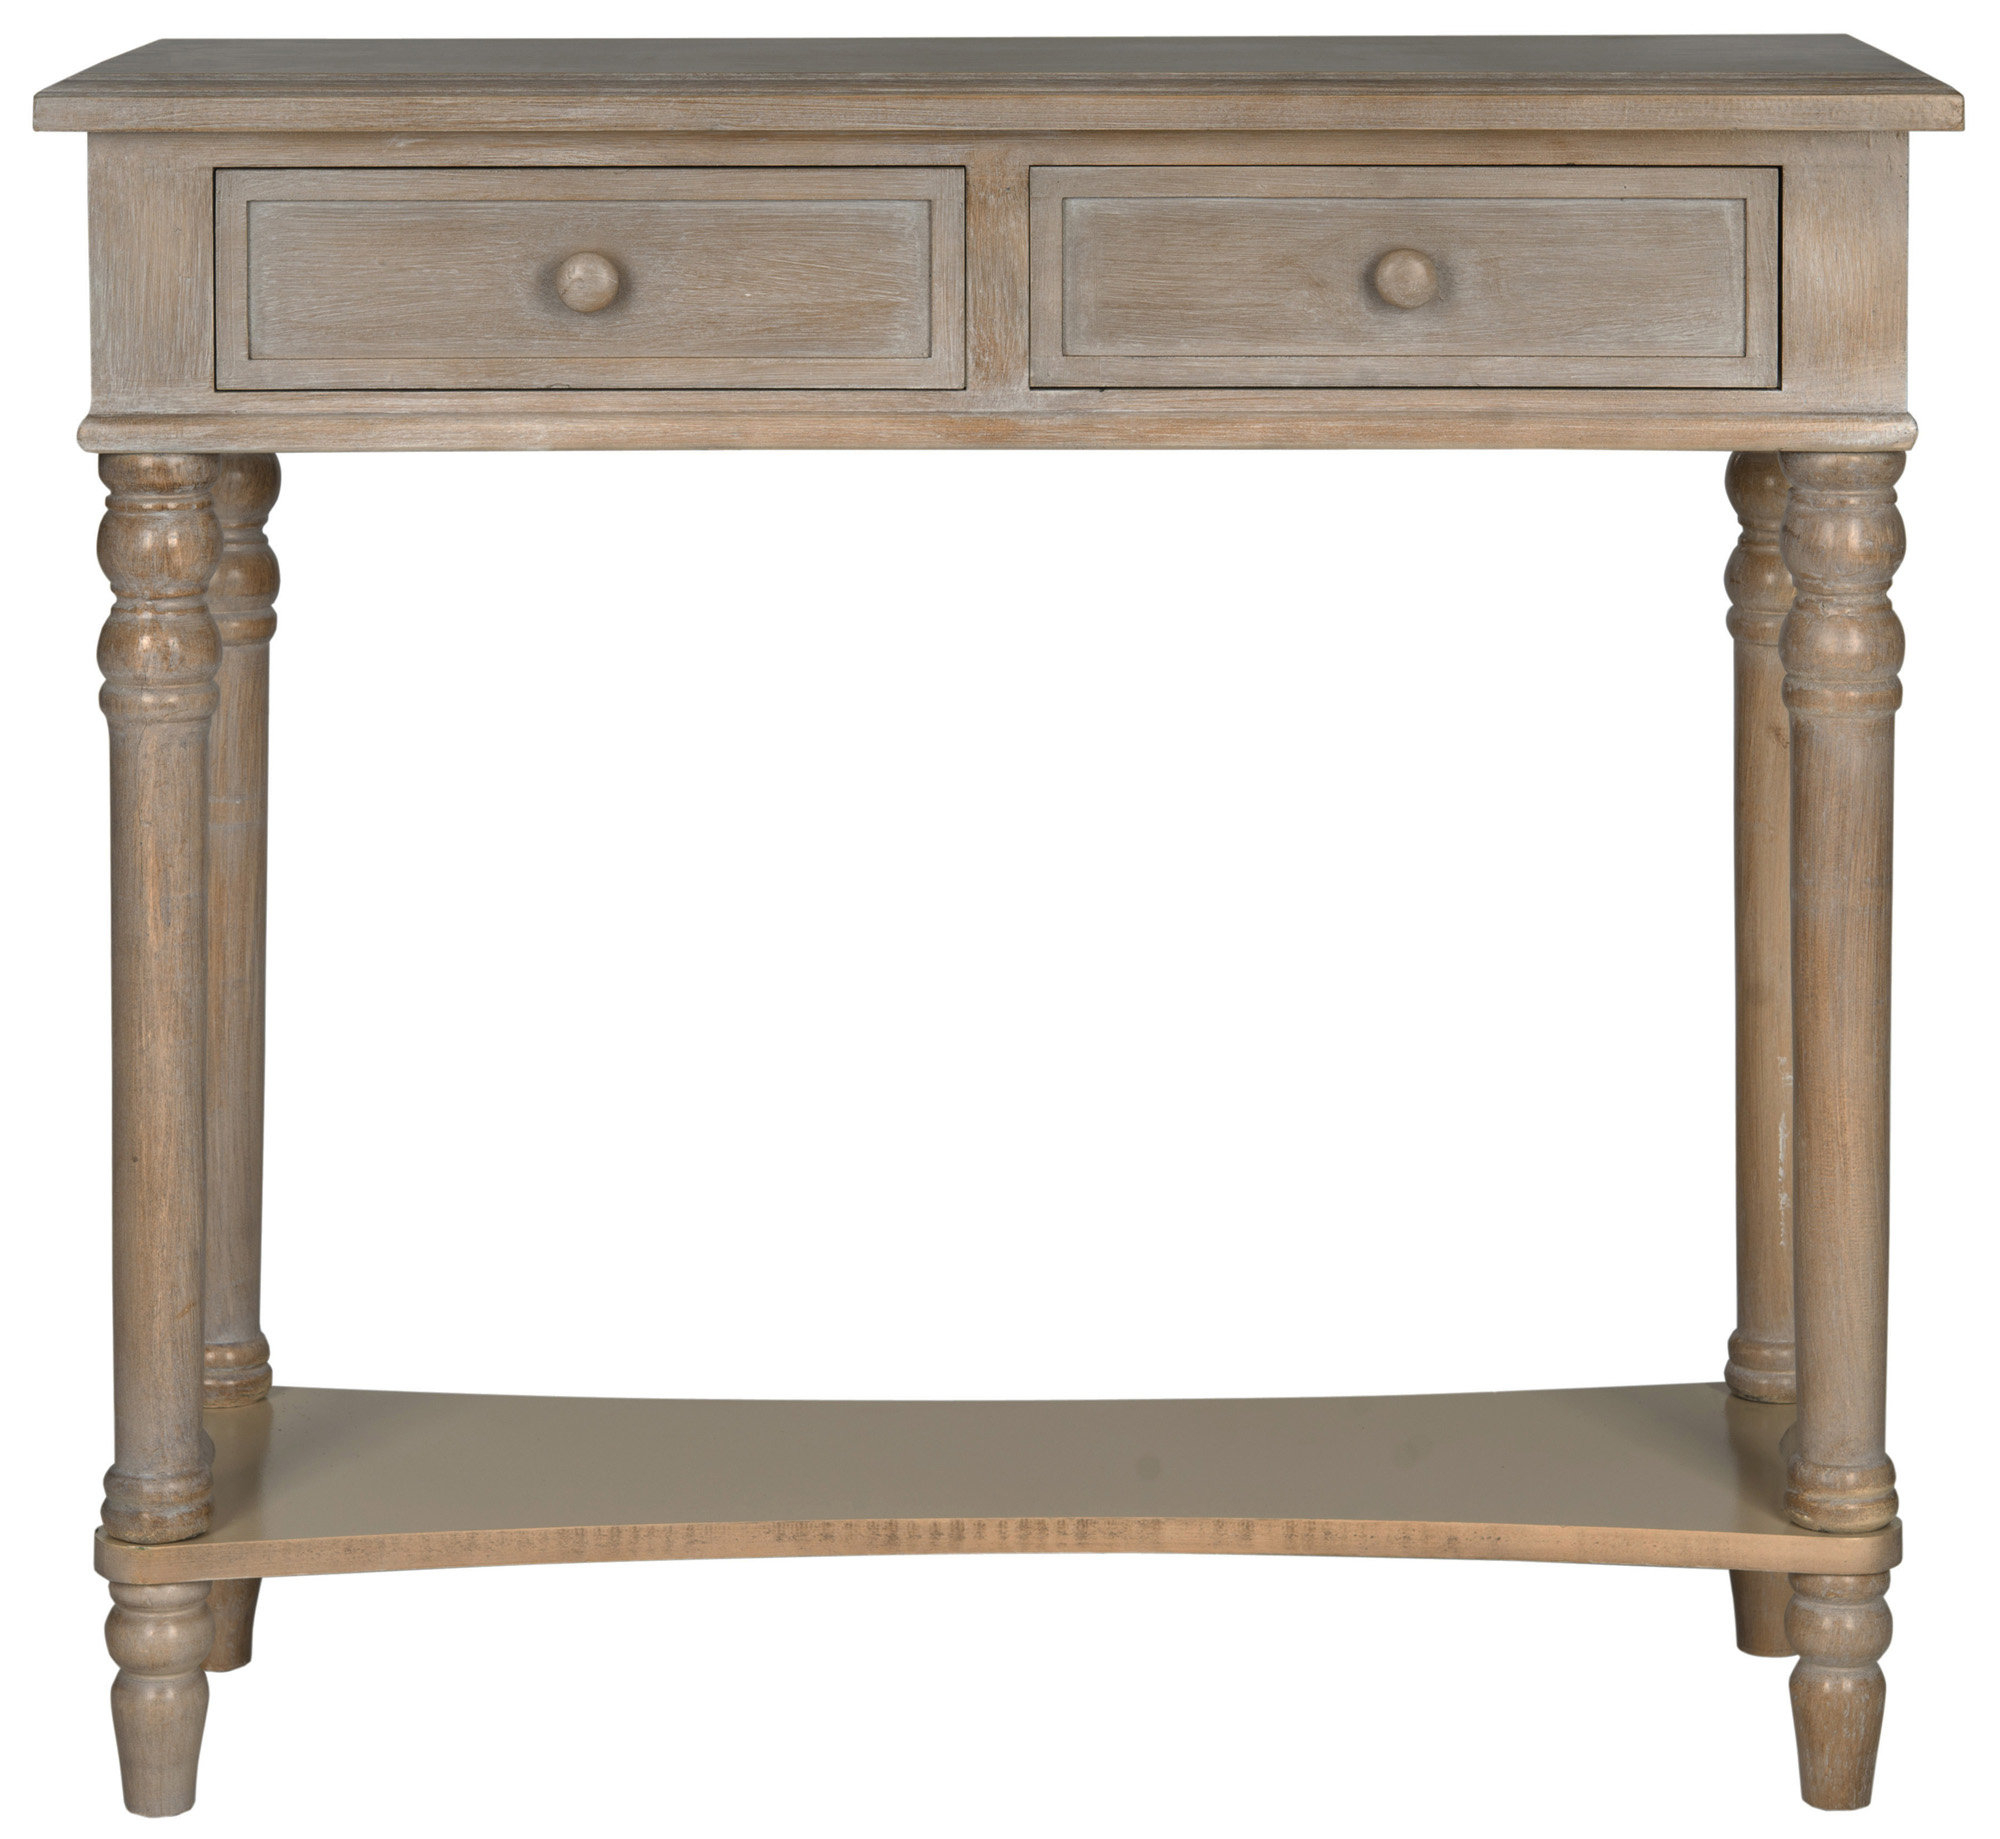 Kitchen Console Tables | Wayfair.co.uk In Mix Agate Metal Frame Console Tables (Gallery 7 of 20)